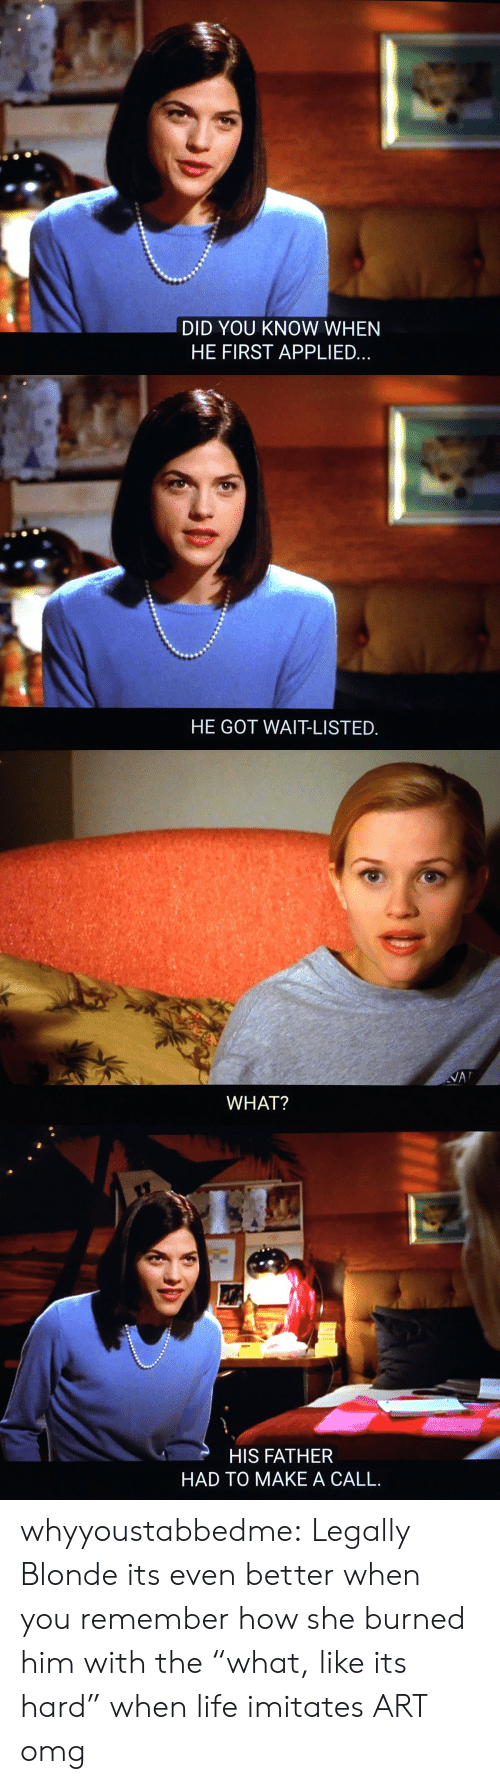 """Life, Omg, and Tumblr: DID YOU KNOW WHEN  HE FIRST APPLIED   HE GOT WAIT-LISTED   WHAT?   HIS FATHER  HAD TO MAKE A CALL. whyyoustabbedme:   Legally Blonde   its even better when you remember how she burned him with the """"what, like its hard""""   when life imitates ART omg"""